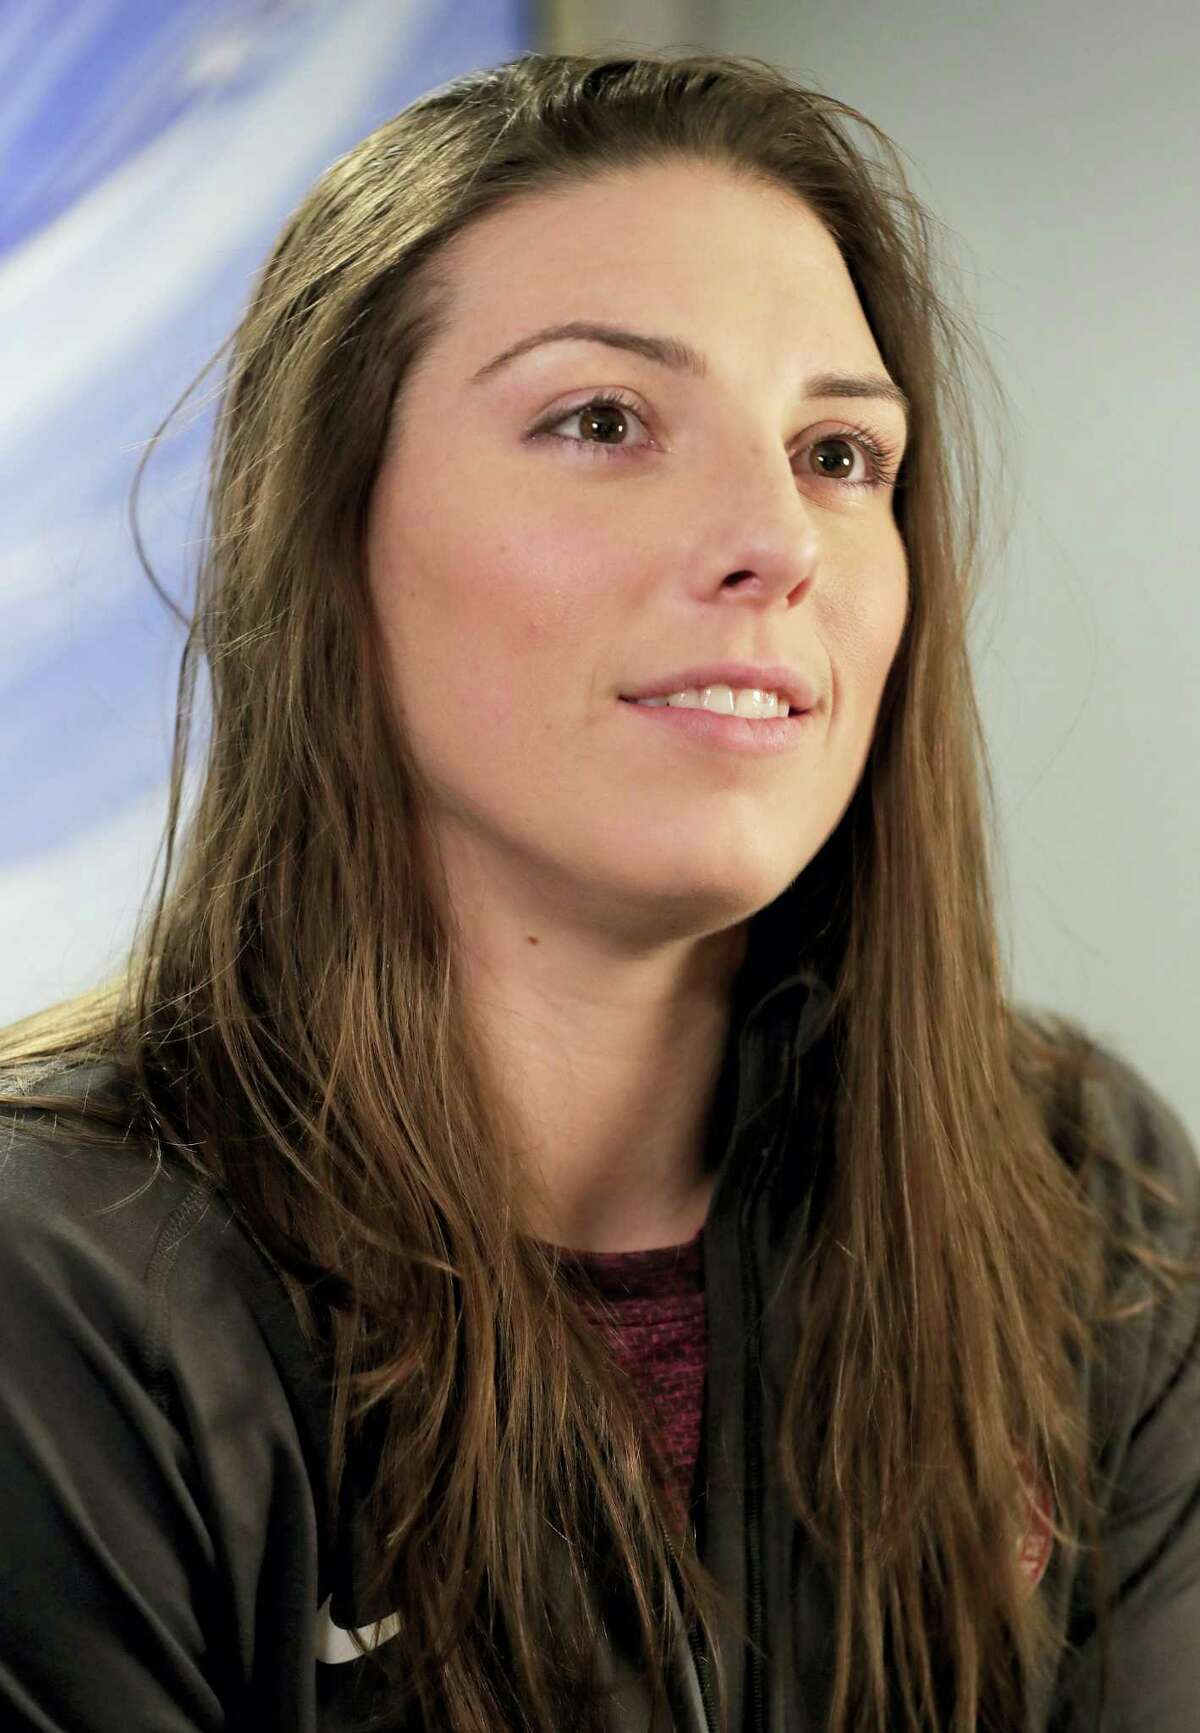 In this Feb. 7, 2017 photo, WNHL player Hilary Knight answers questions during an interview in New York. The U.S. women's hockey team is threatening to boycott the world championships because of a wage dispute. The team announced Wednesday that they will not participate in the International Ice Hockey Federation tournament that begins March 31, 2017 in Plymouth, Michigan.